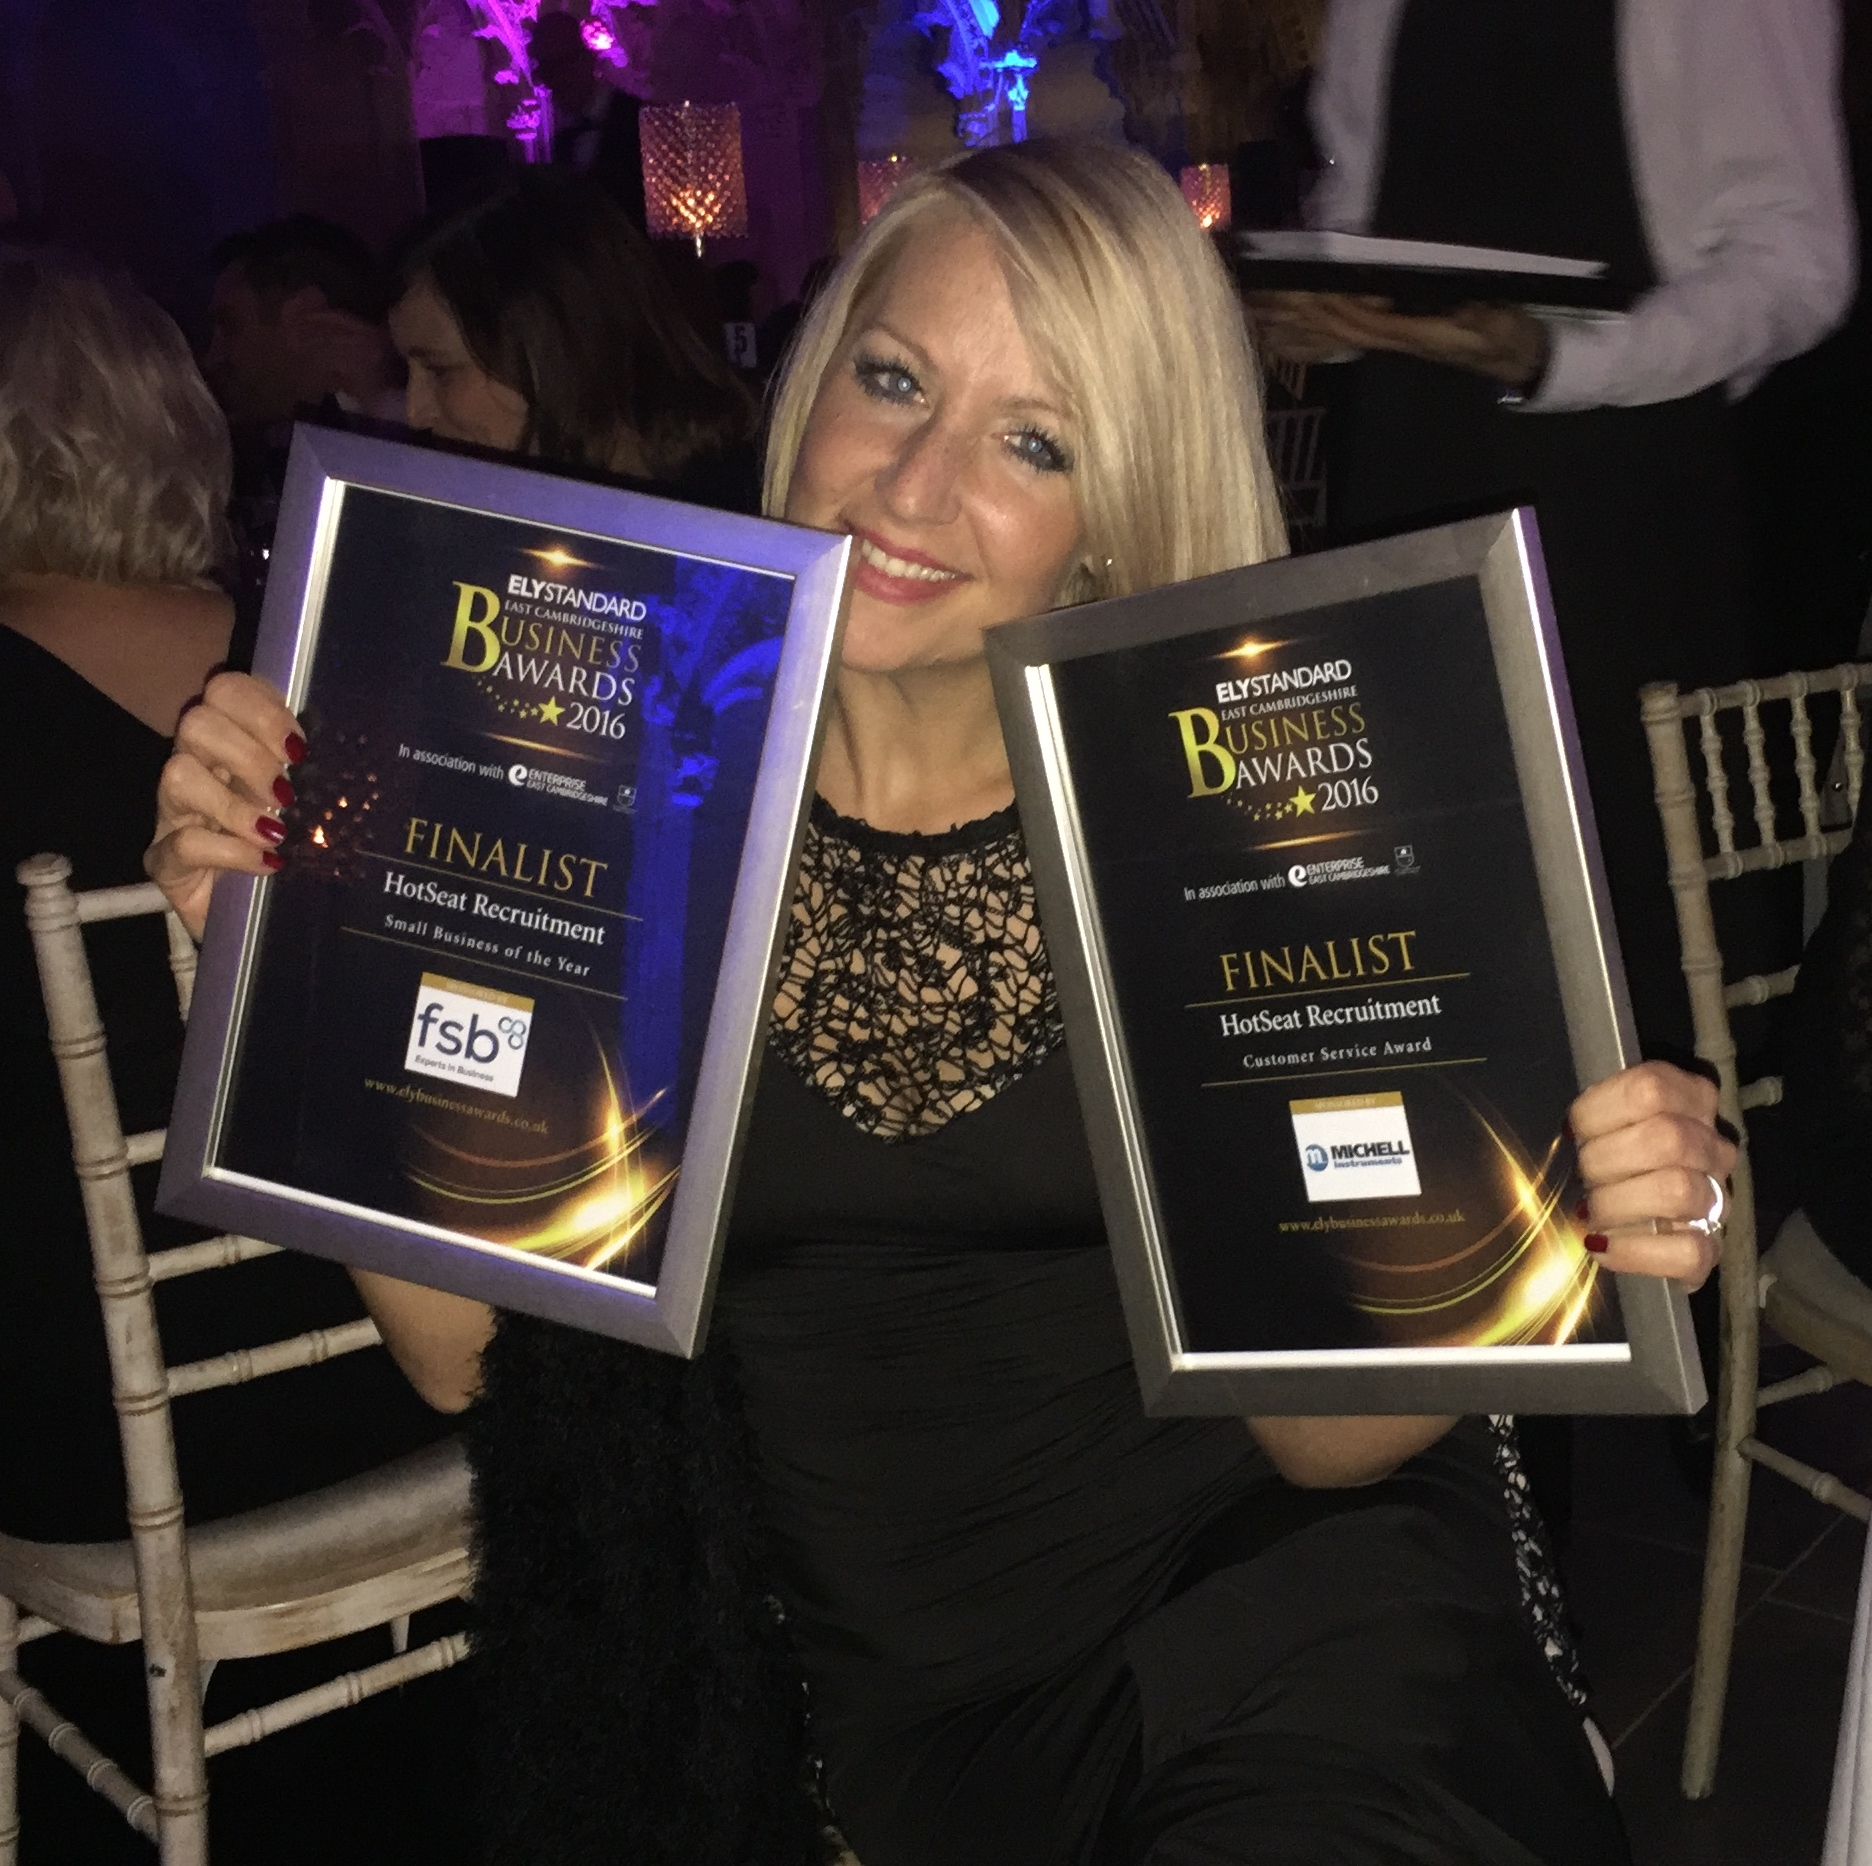 HotSeat Recruitment Makes the Finals of the Cambridgeshire Business Awards 2016